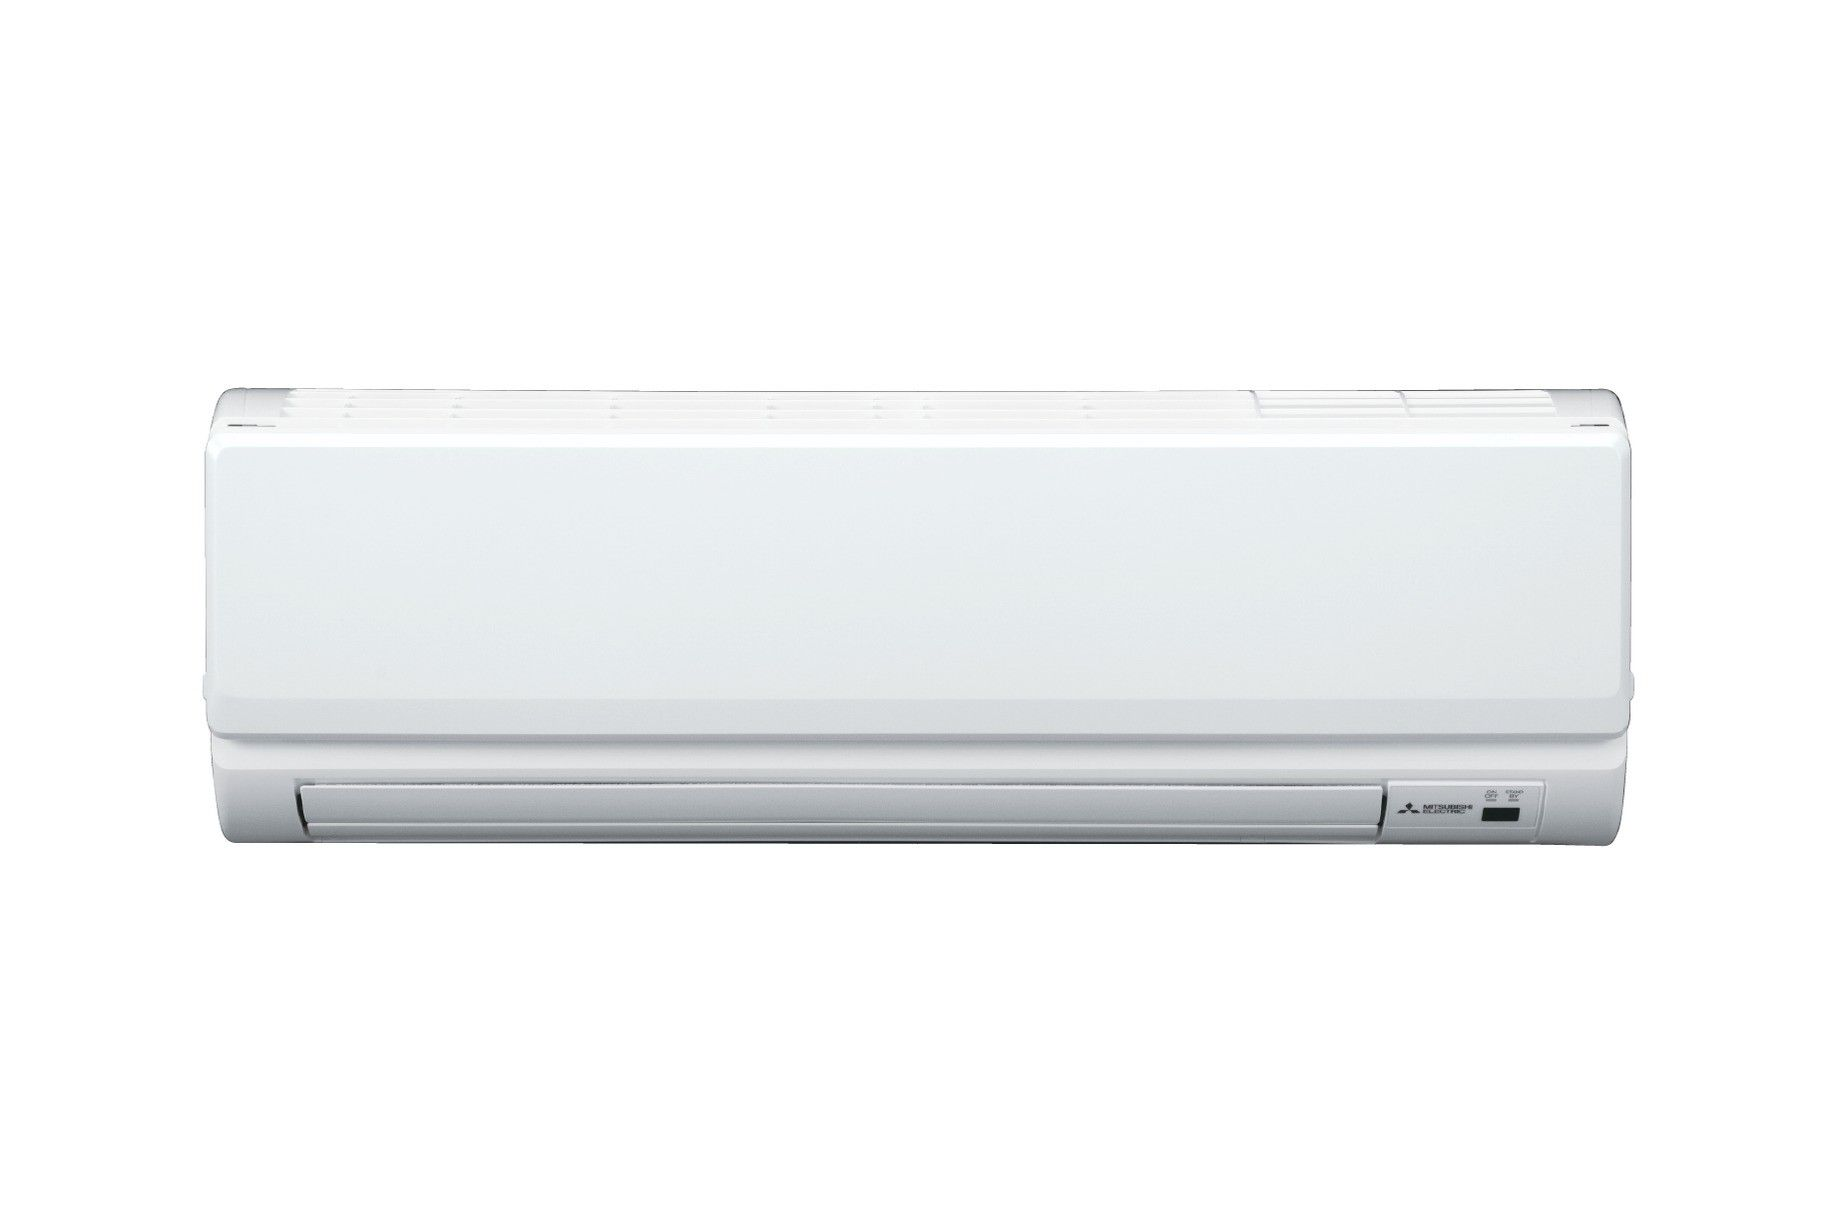 Air Conditioner moreover Mitsubishi Wall Mounted Air Conditioner Units  #5F6C6C